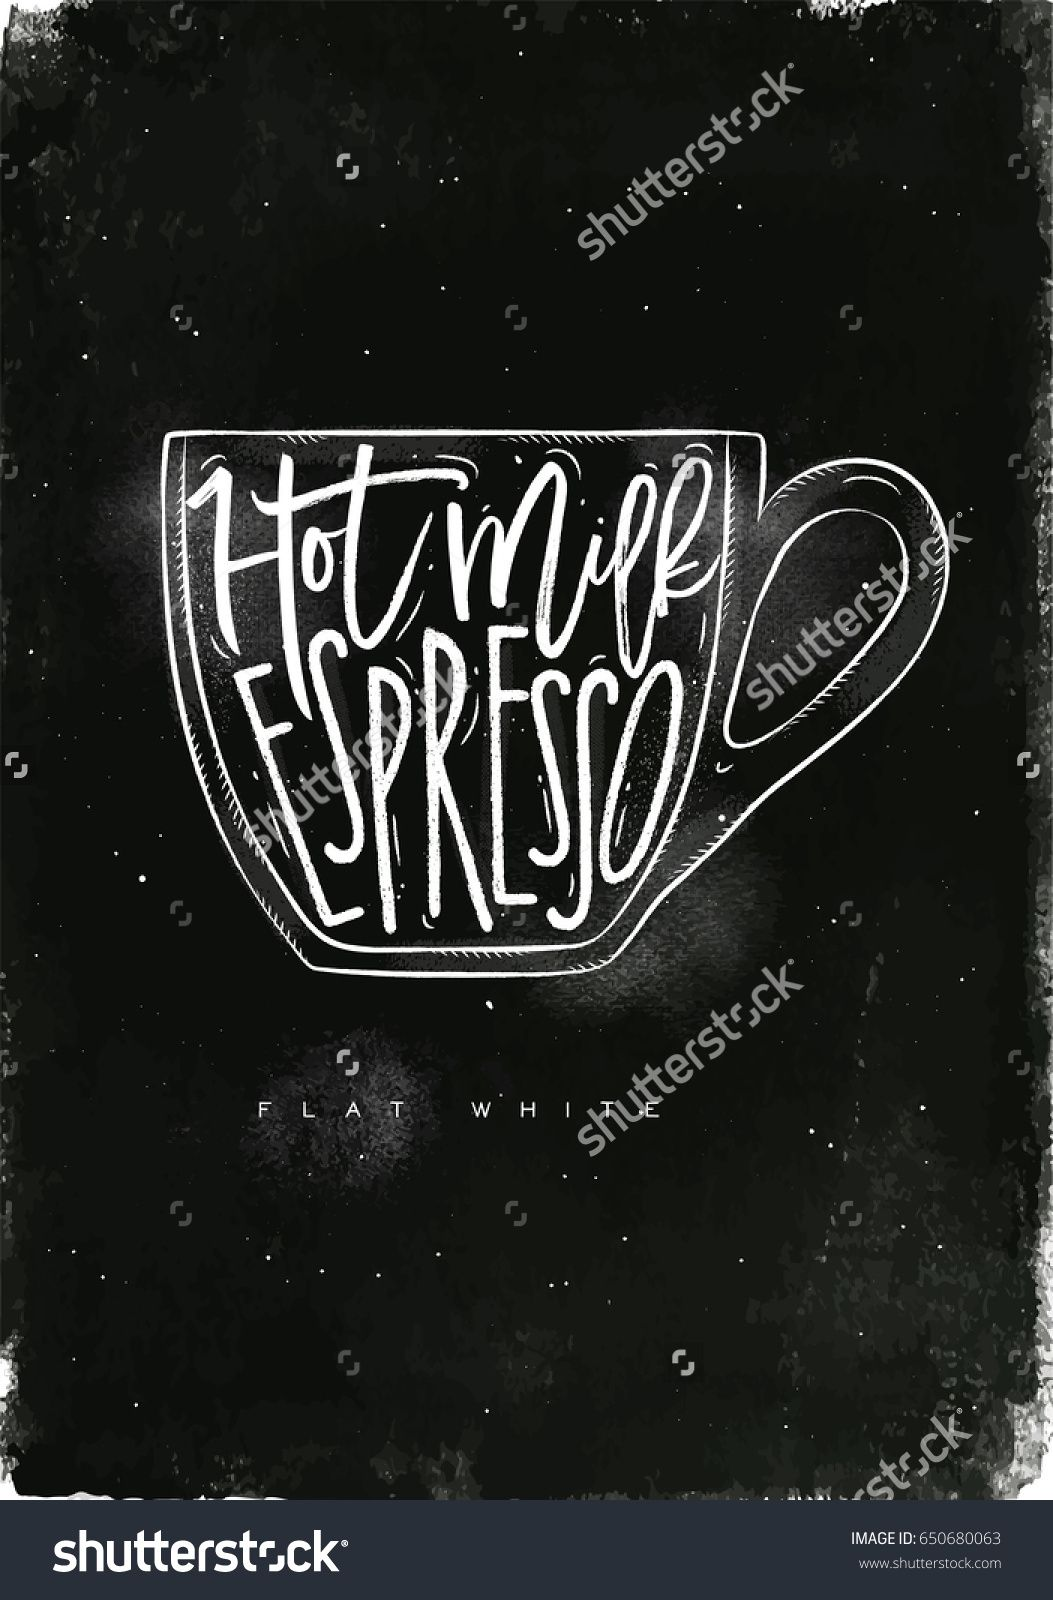 Flat White Lettering Hot Milk Espresso In Vintage Graphic Style Drawing With Chalk On Chalkboard